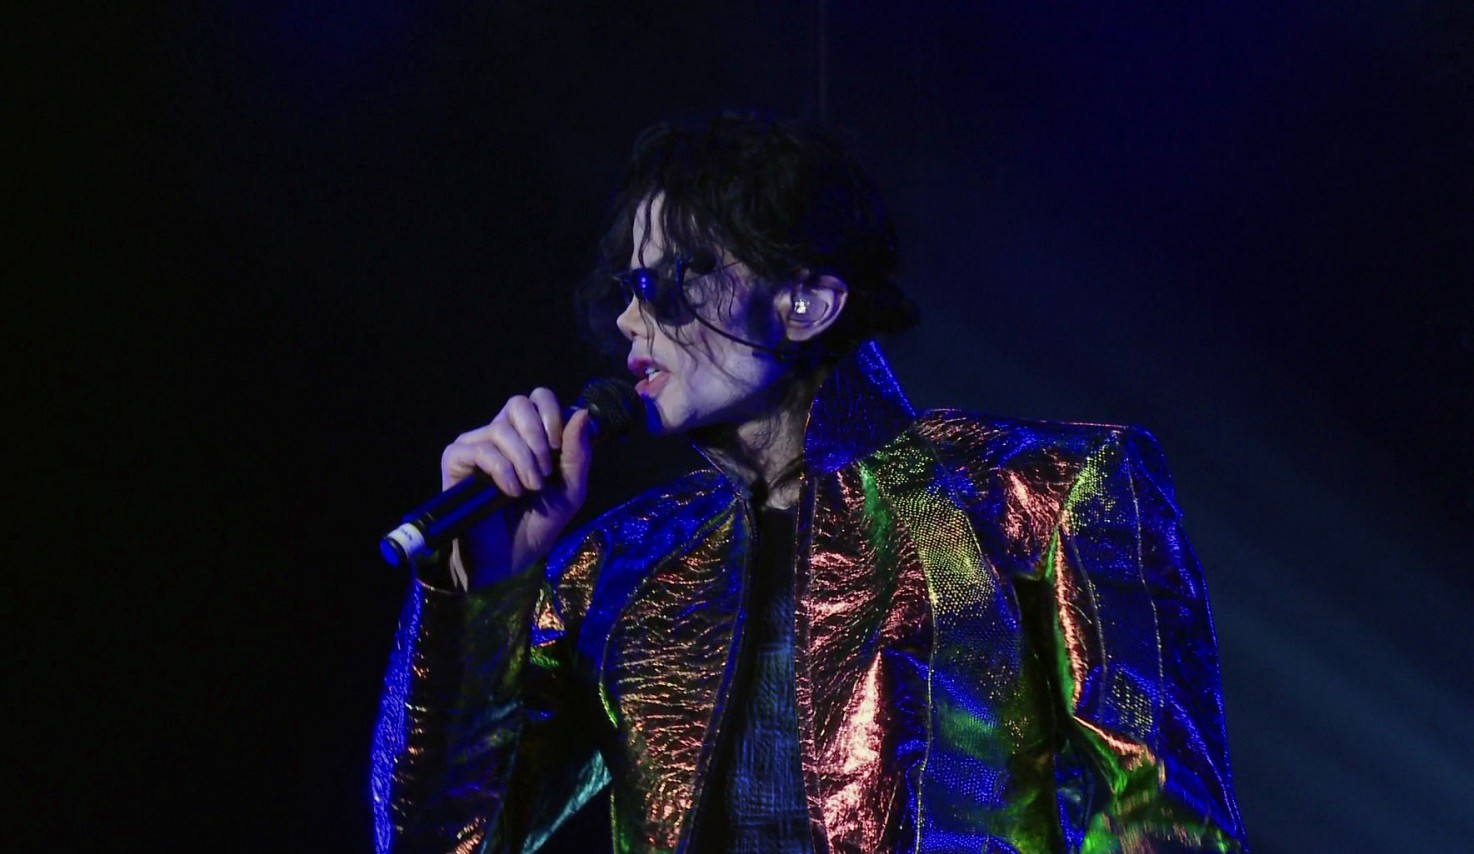 Inedito Audio Do Ensaio De Will You Be There Para O Show This Is It De Michael Jackson By Mj Beats Mj Beats